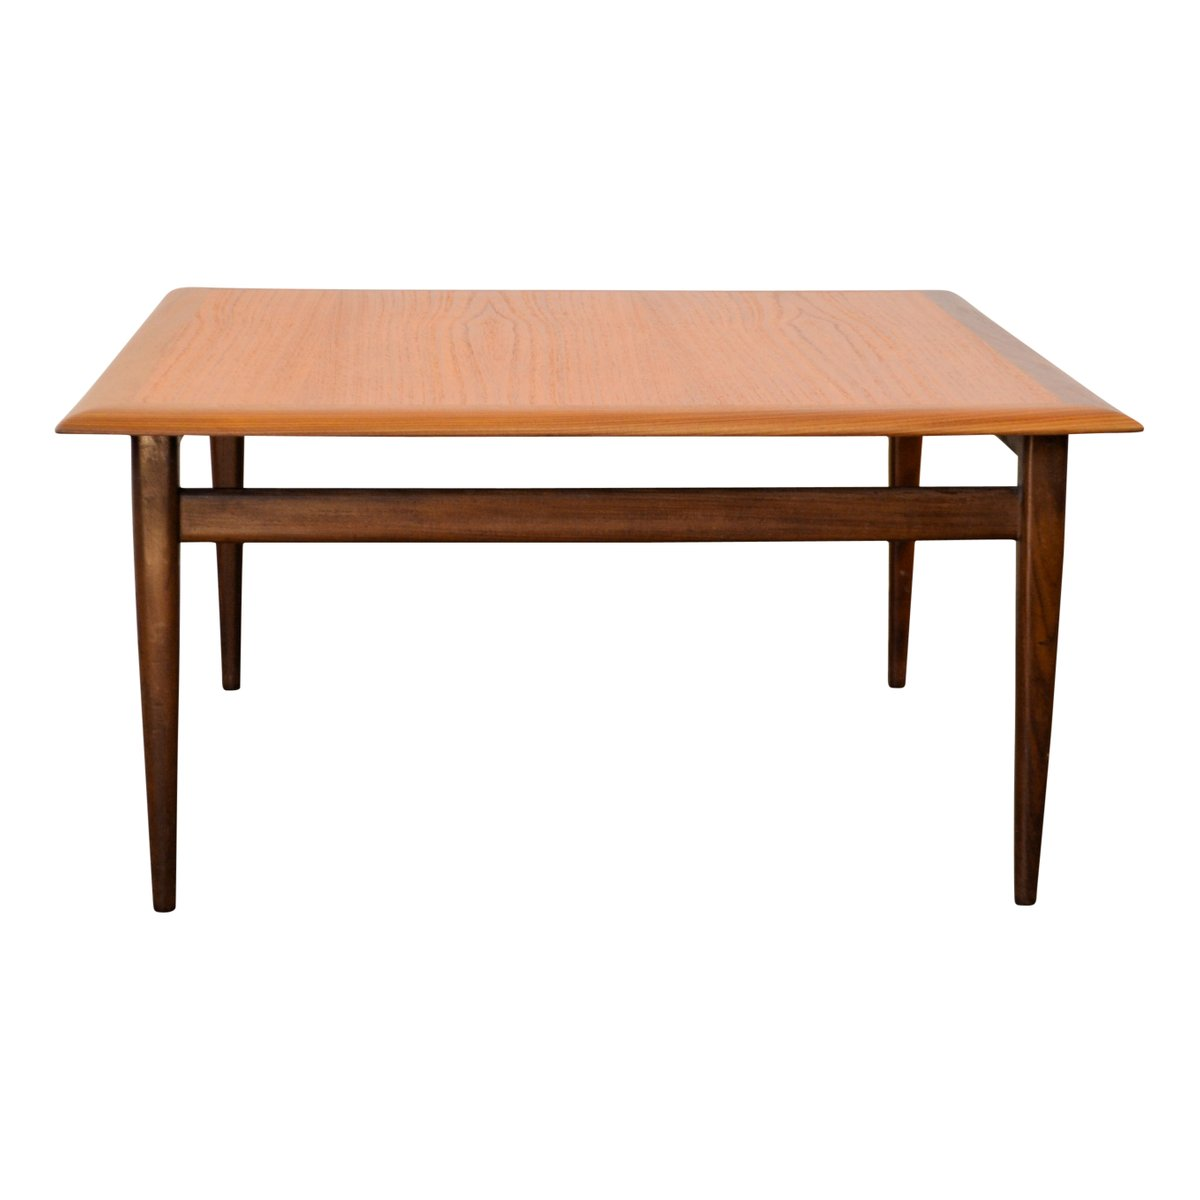 Teak Square Coffee Table, 1960s For Sale At Pamono